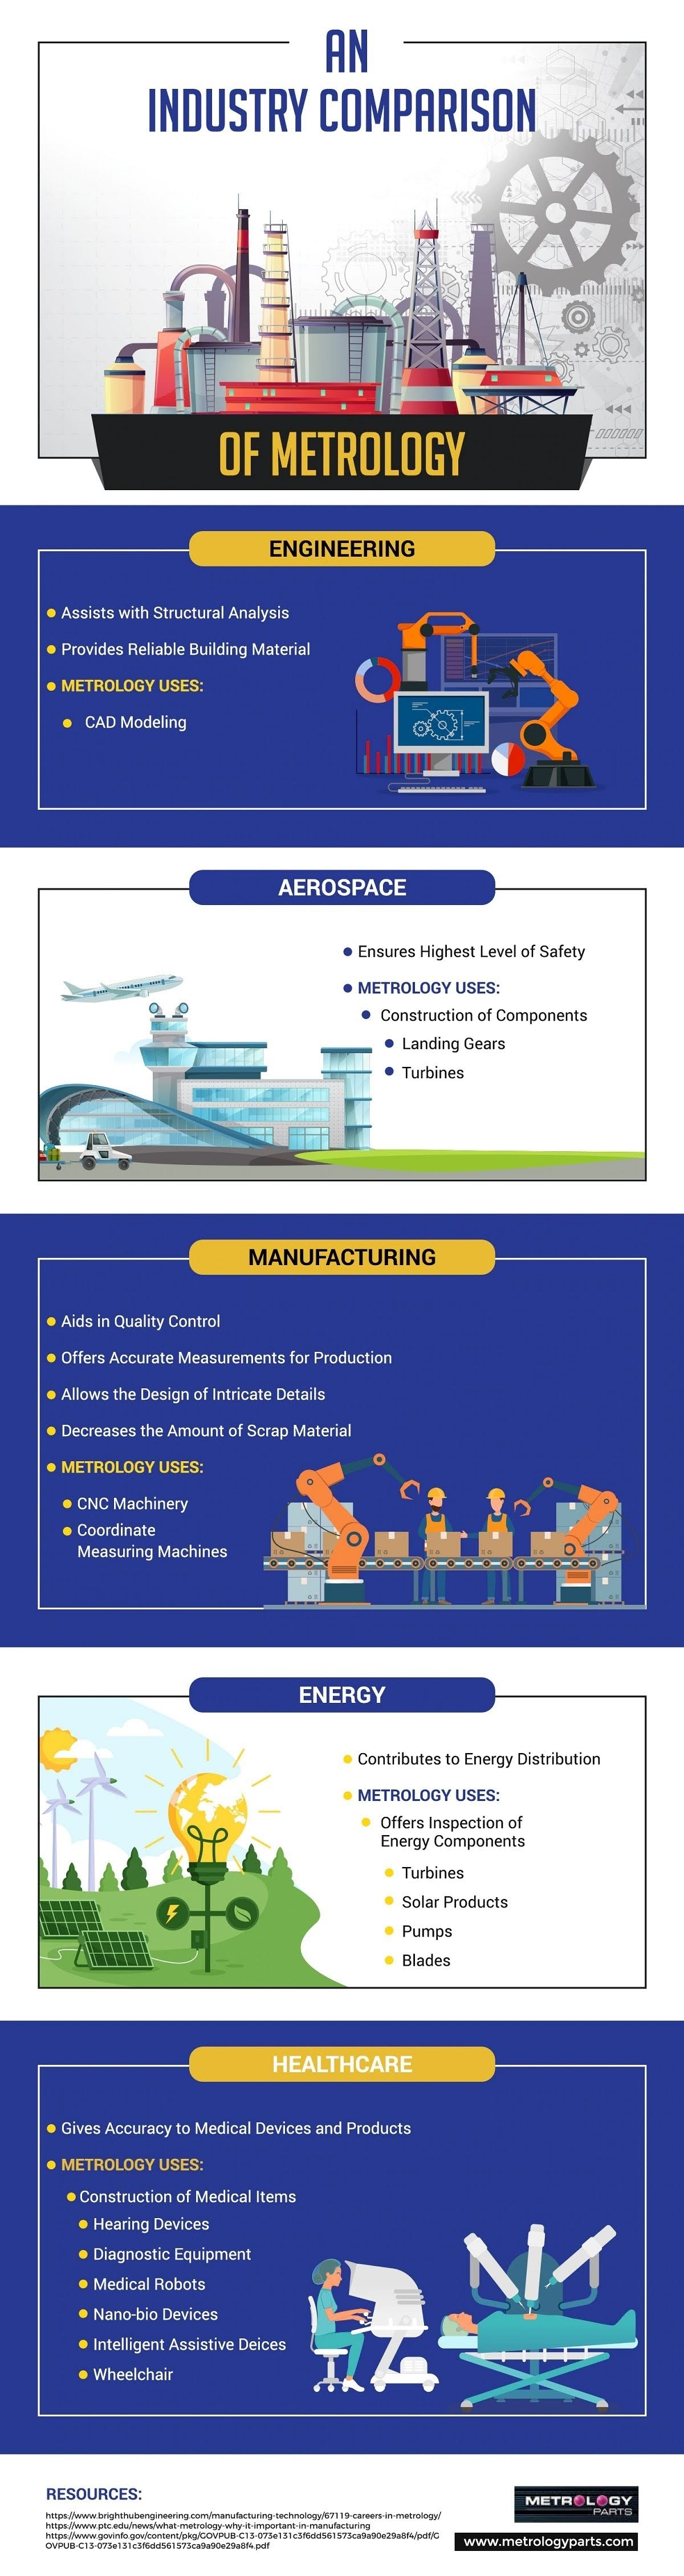 An Industry Comparison of Metrology #infographic